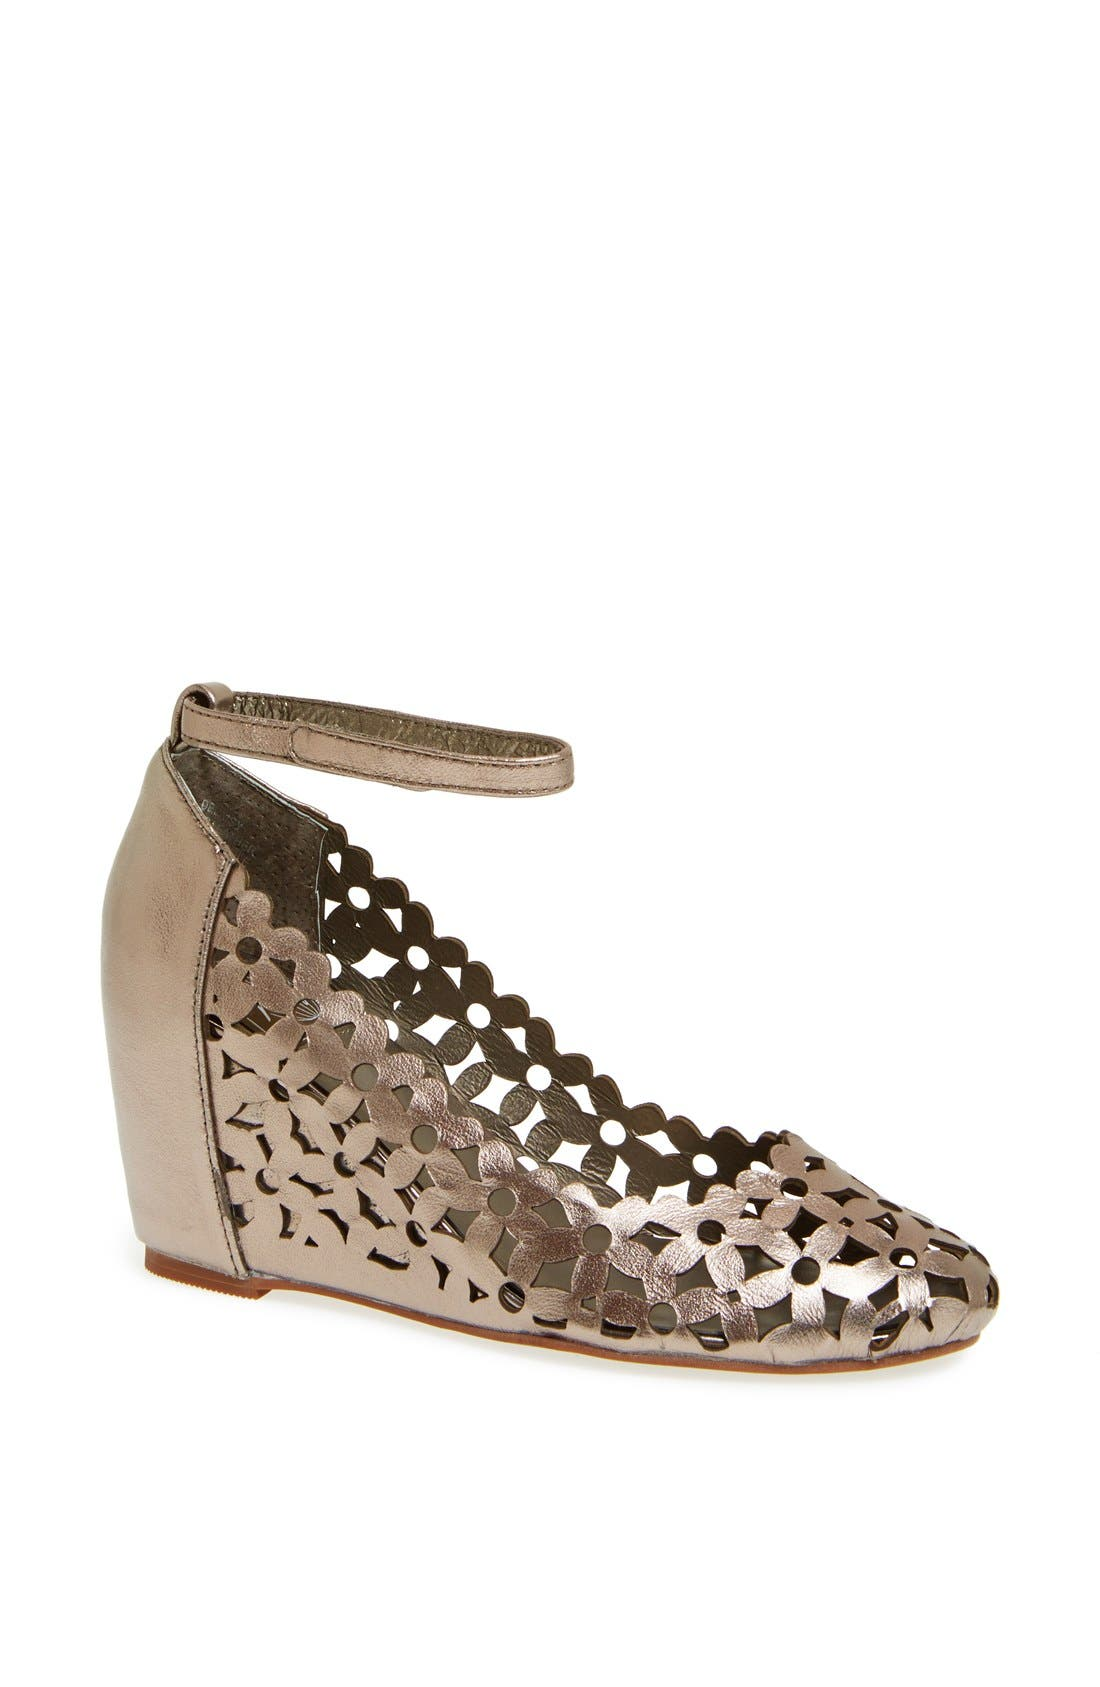 Alternate Image 1 Selected - Jeffrey Campbell 'Delaisy' Wedge Pump